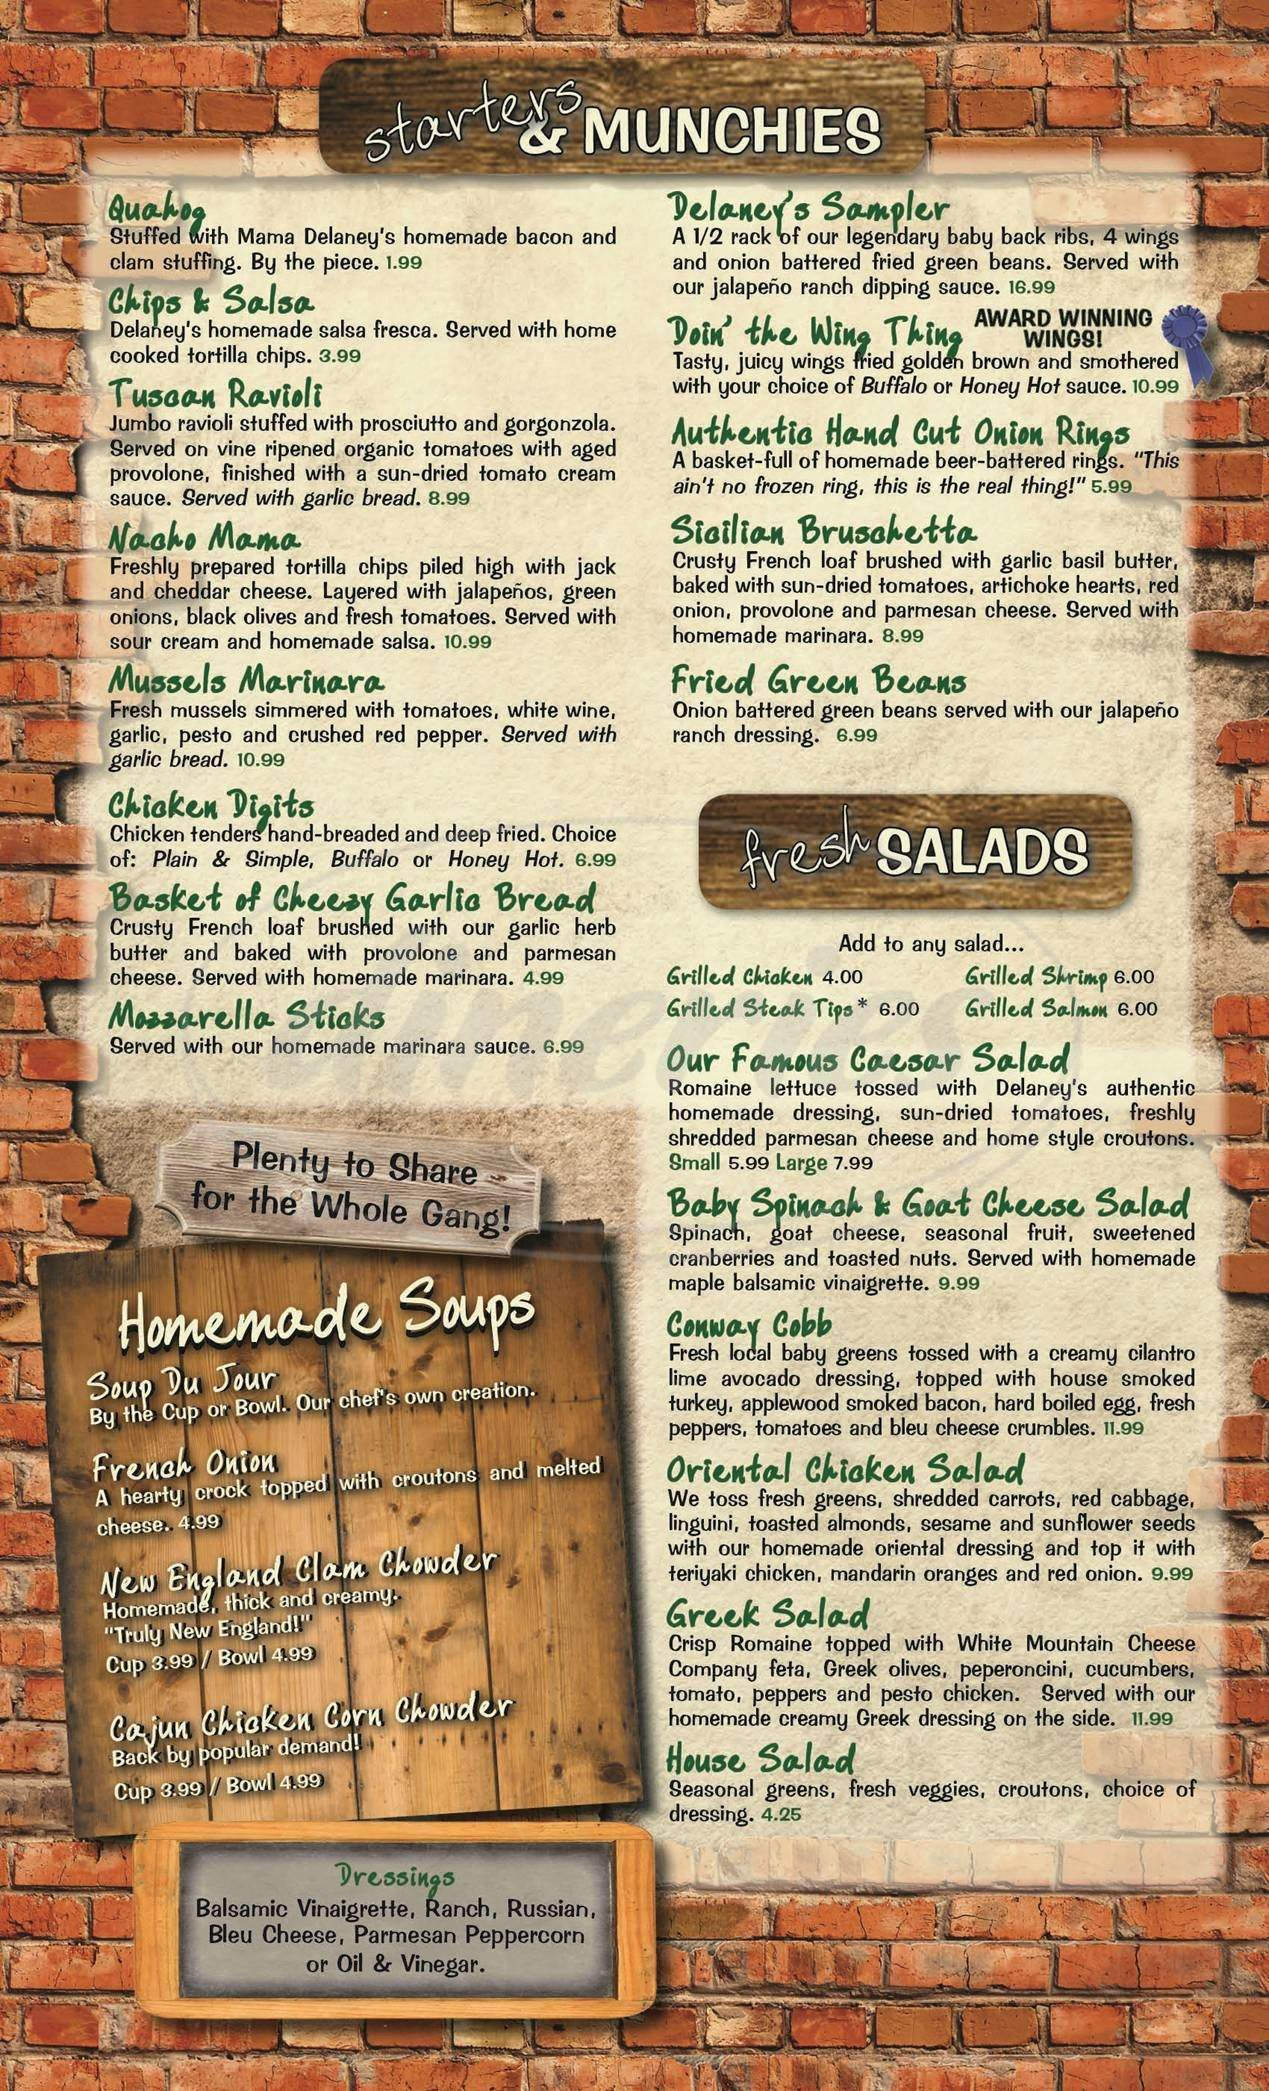 menu for Delaney's Hole In the Wall